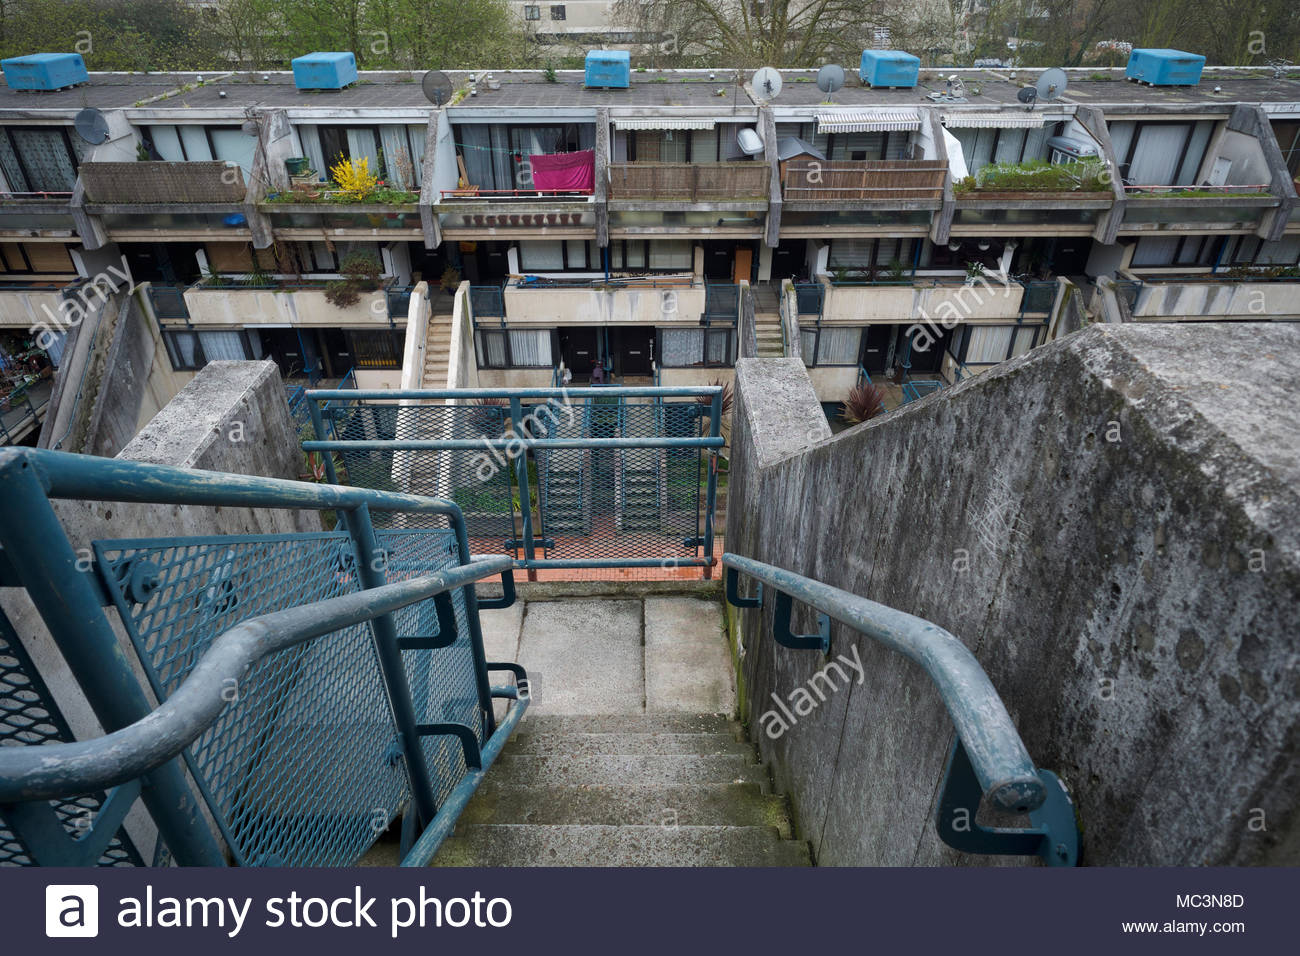 Alexandra Road housing estate in Camden: London. Stock Photo